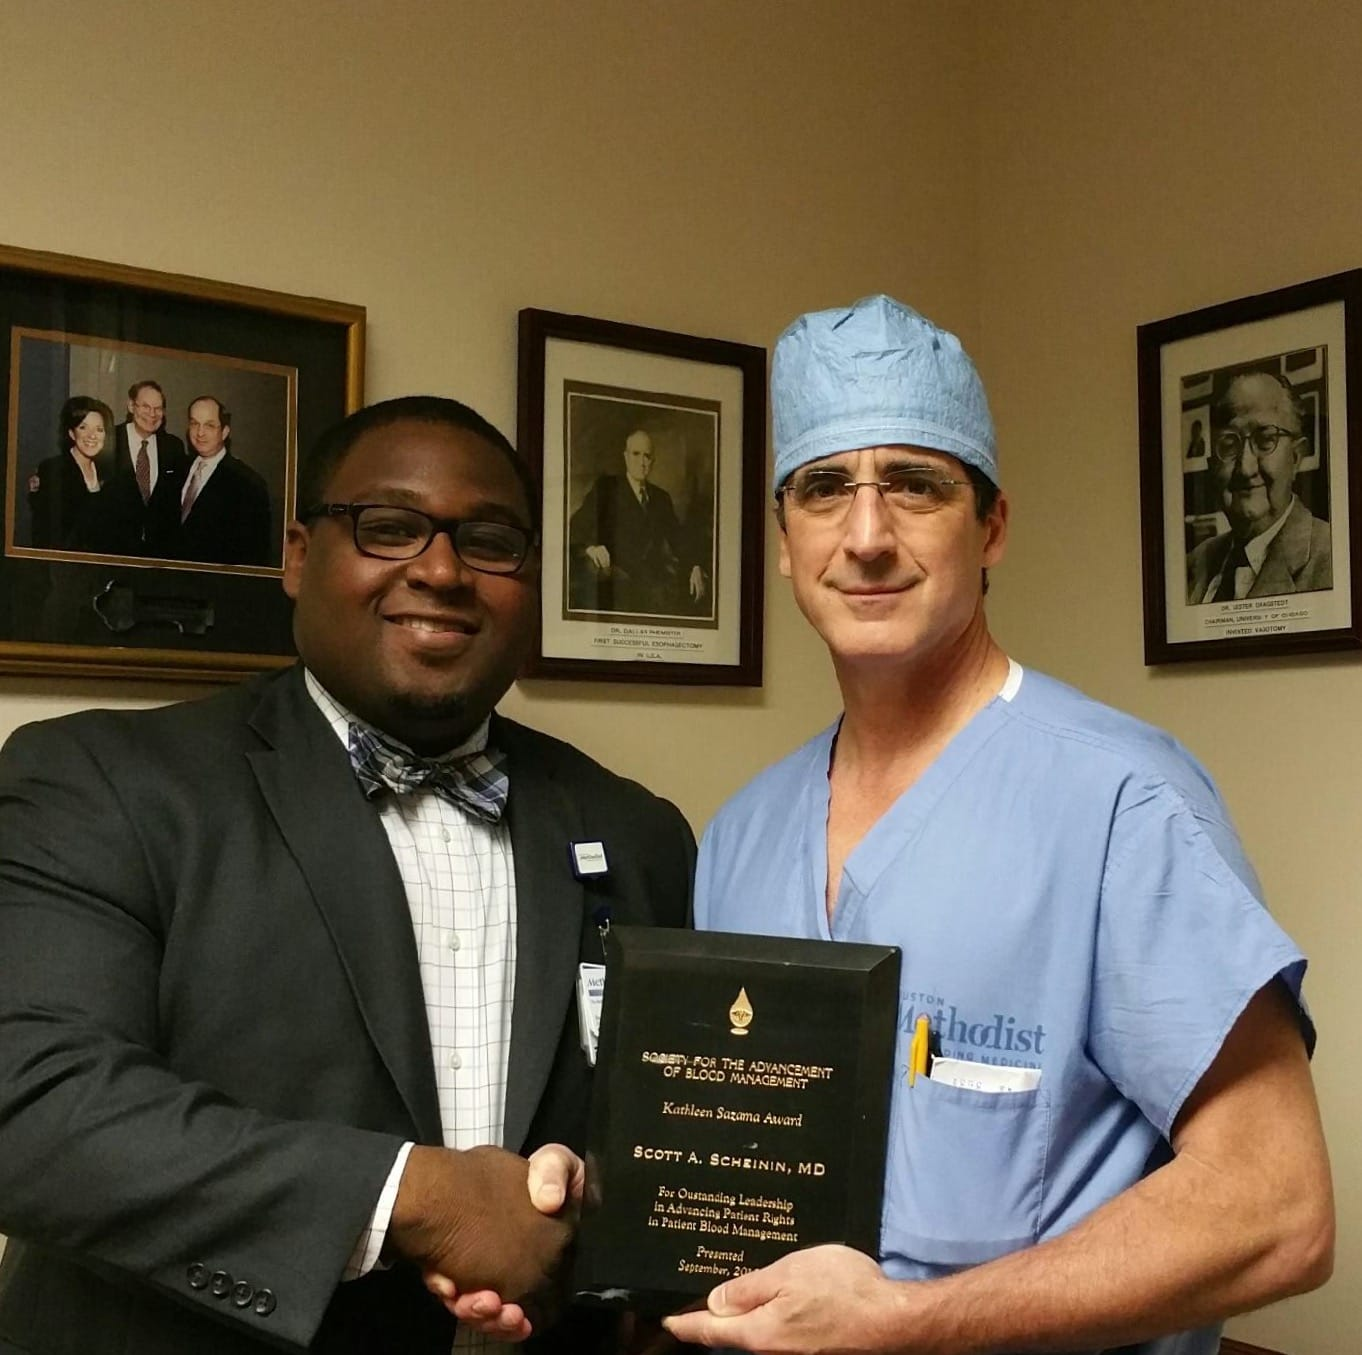 Dr. Scott A. Scheinin (right) pictured with Cedric Bates (left) from Houston Methodist